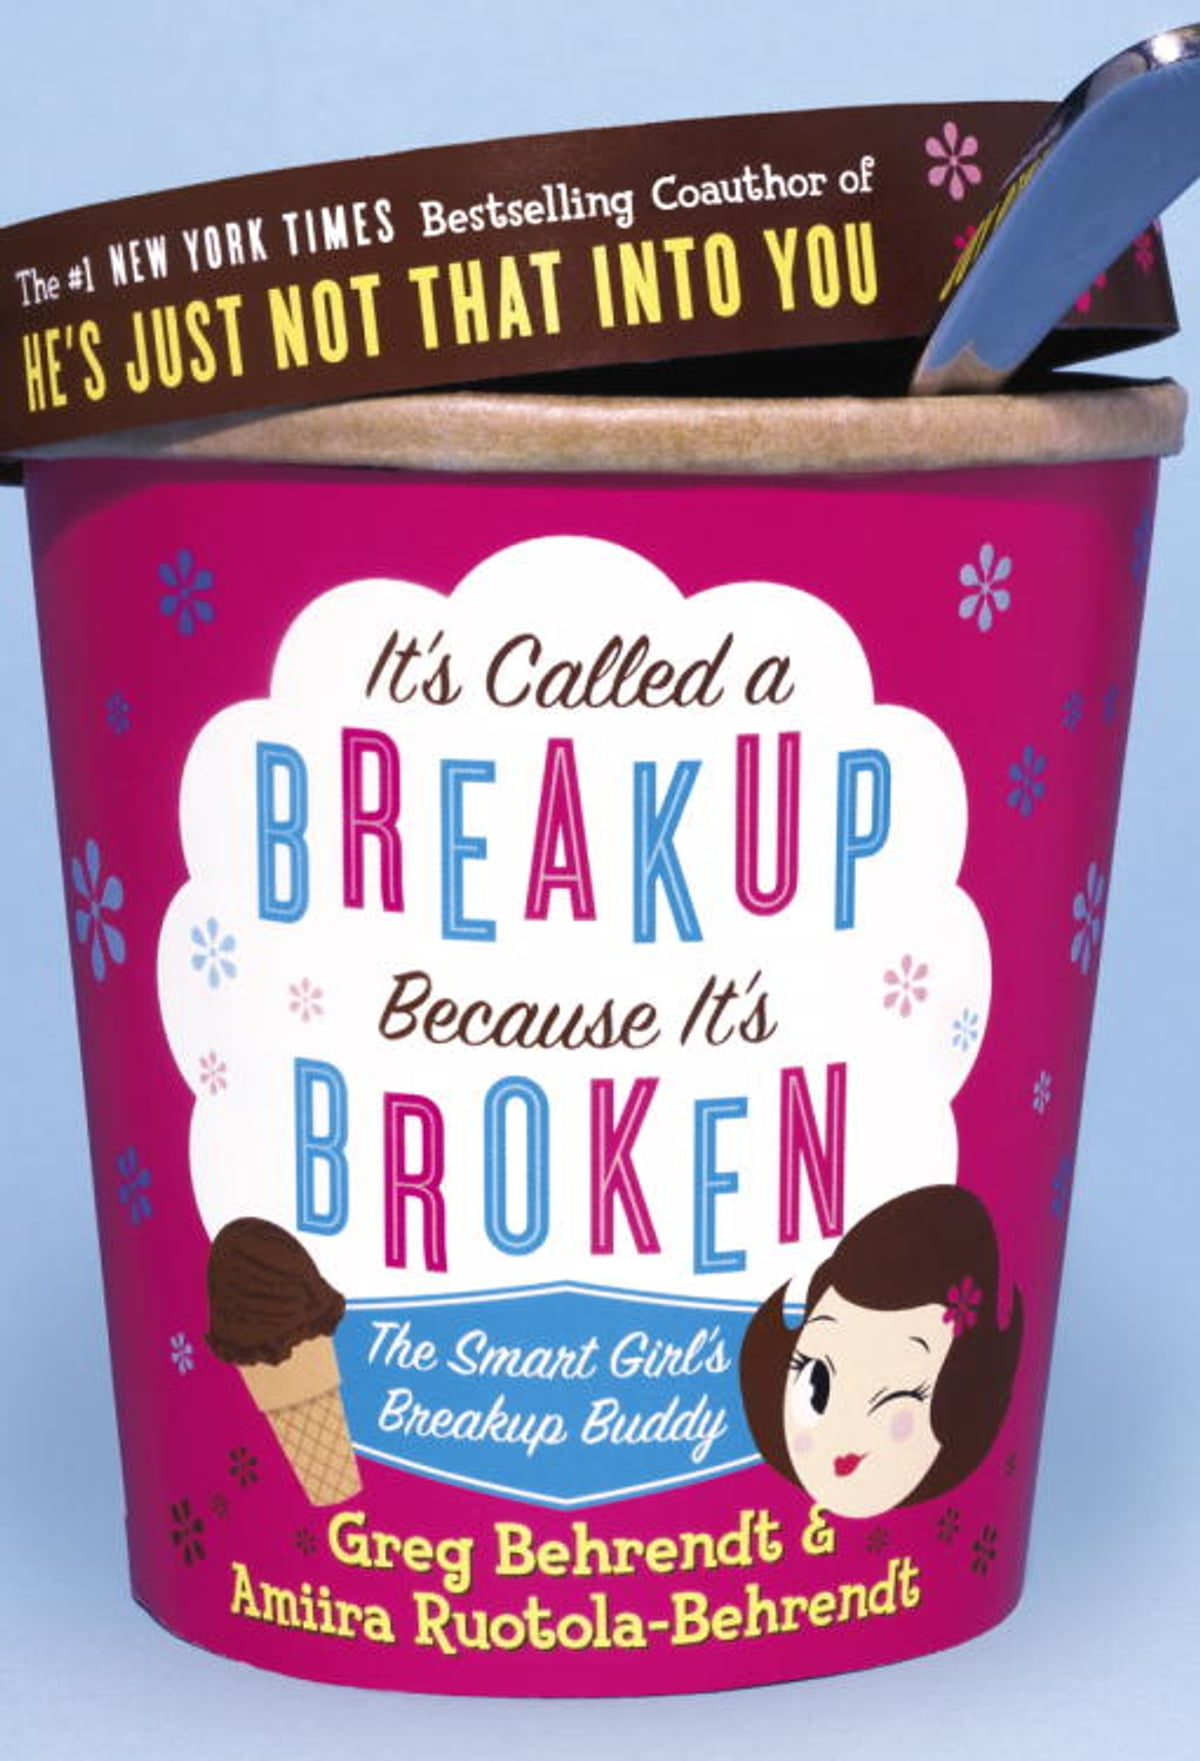 It's Called A Breakup Because It's Broken Ebook By Greg Behrendt   9780767922890  Rakuten Kobo